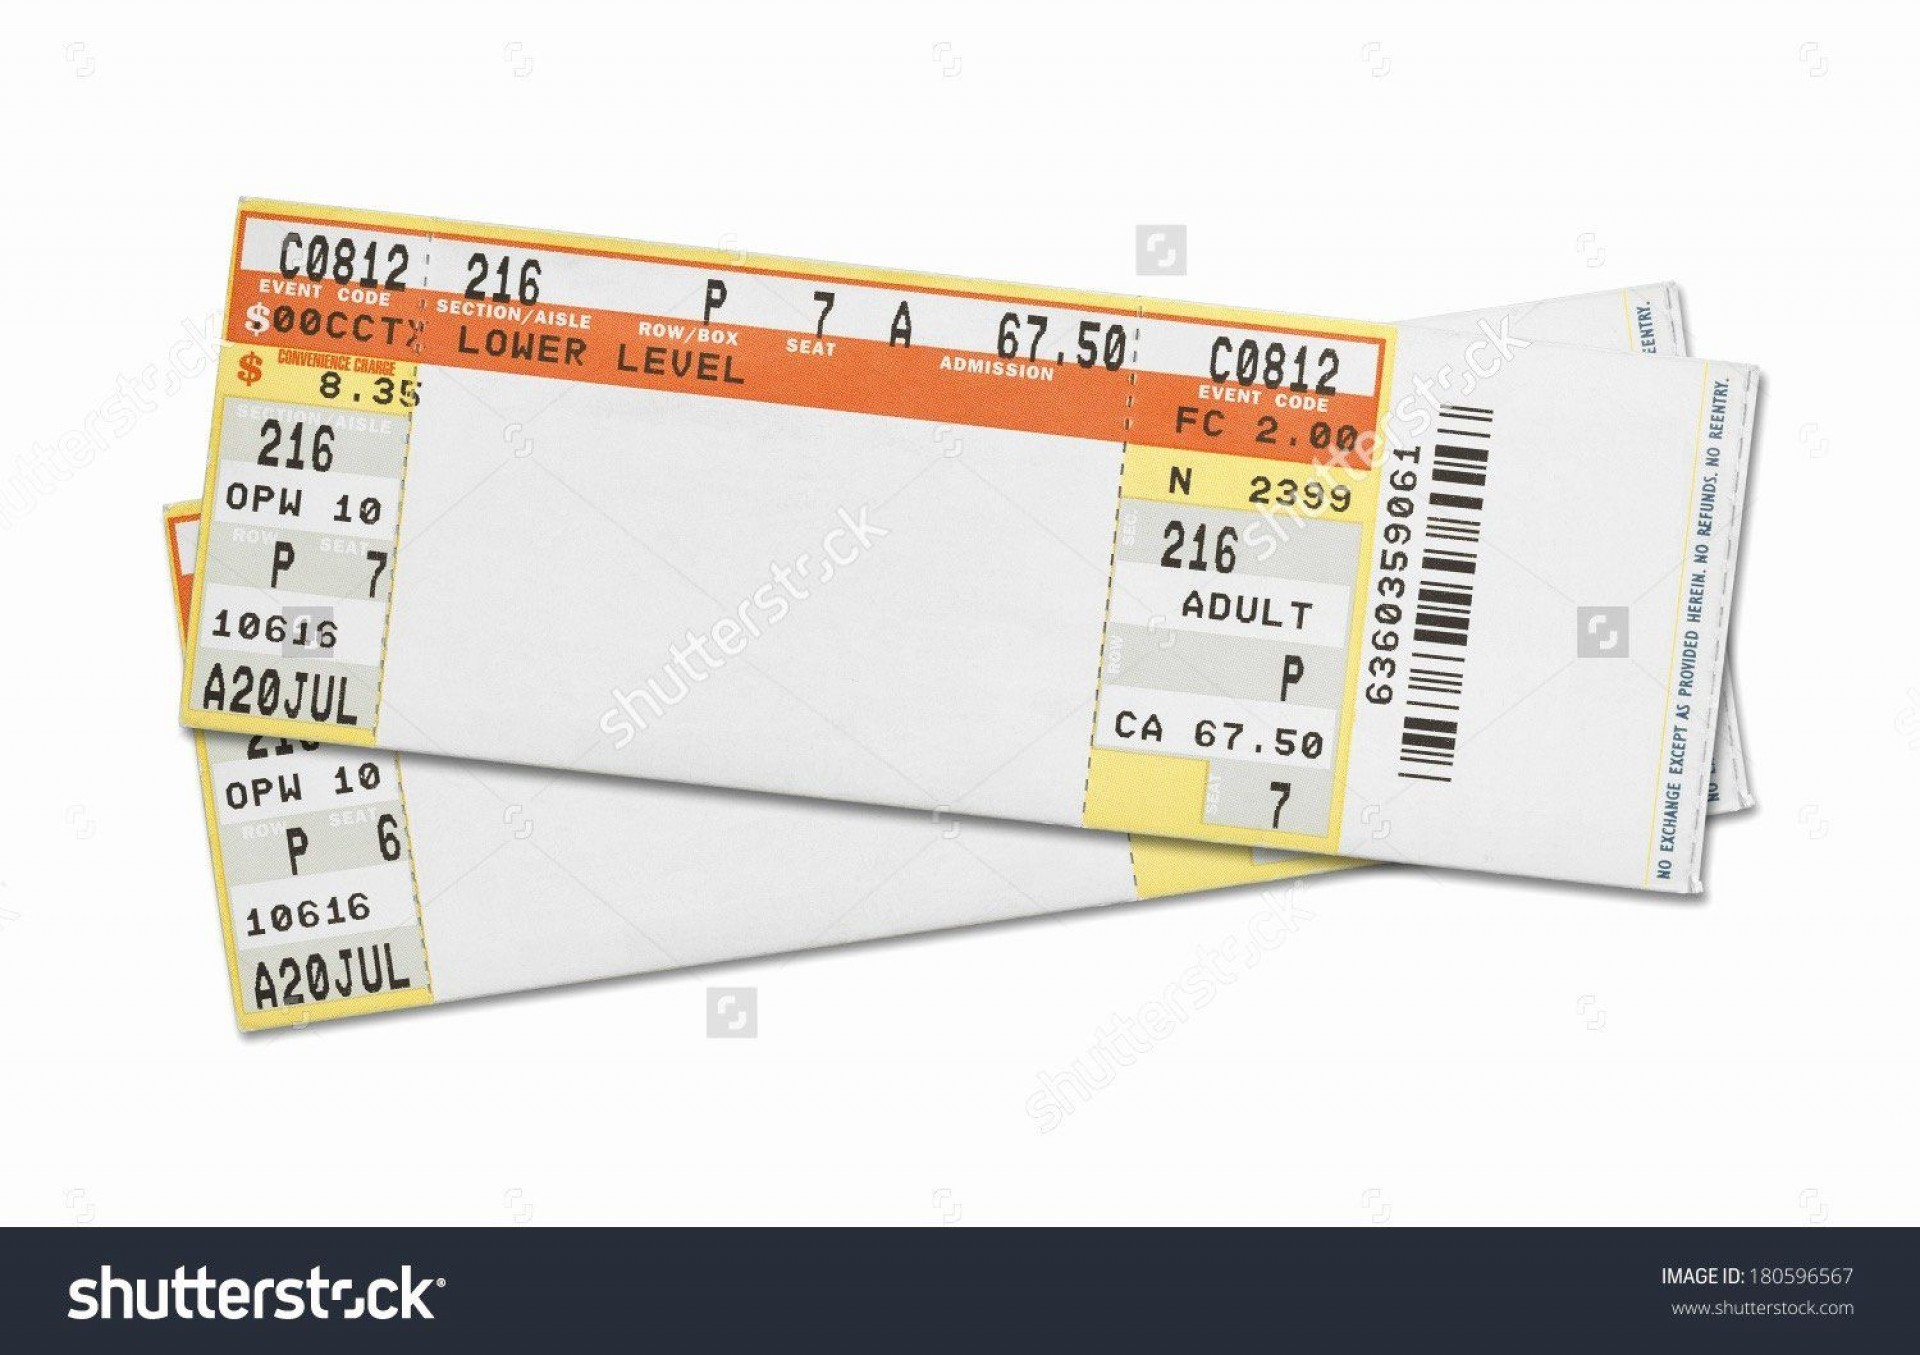 004 Archaicawful Concert Ticket Template Word Inspiration  Free Microsoft1920